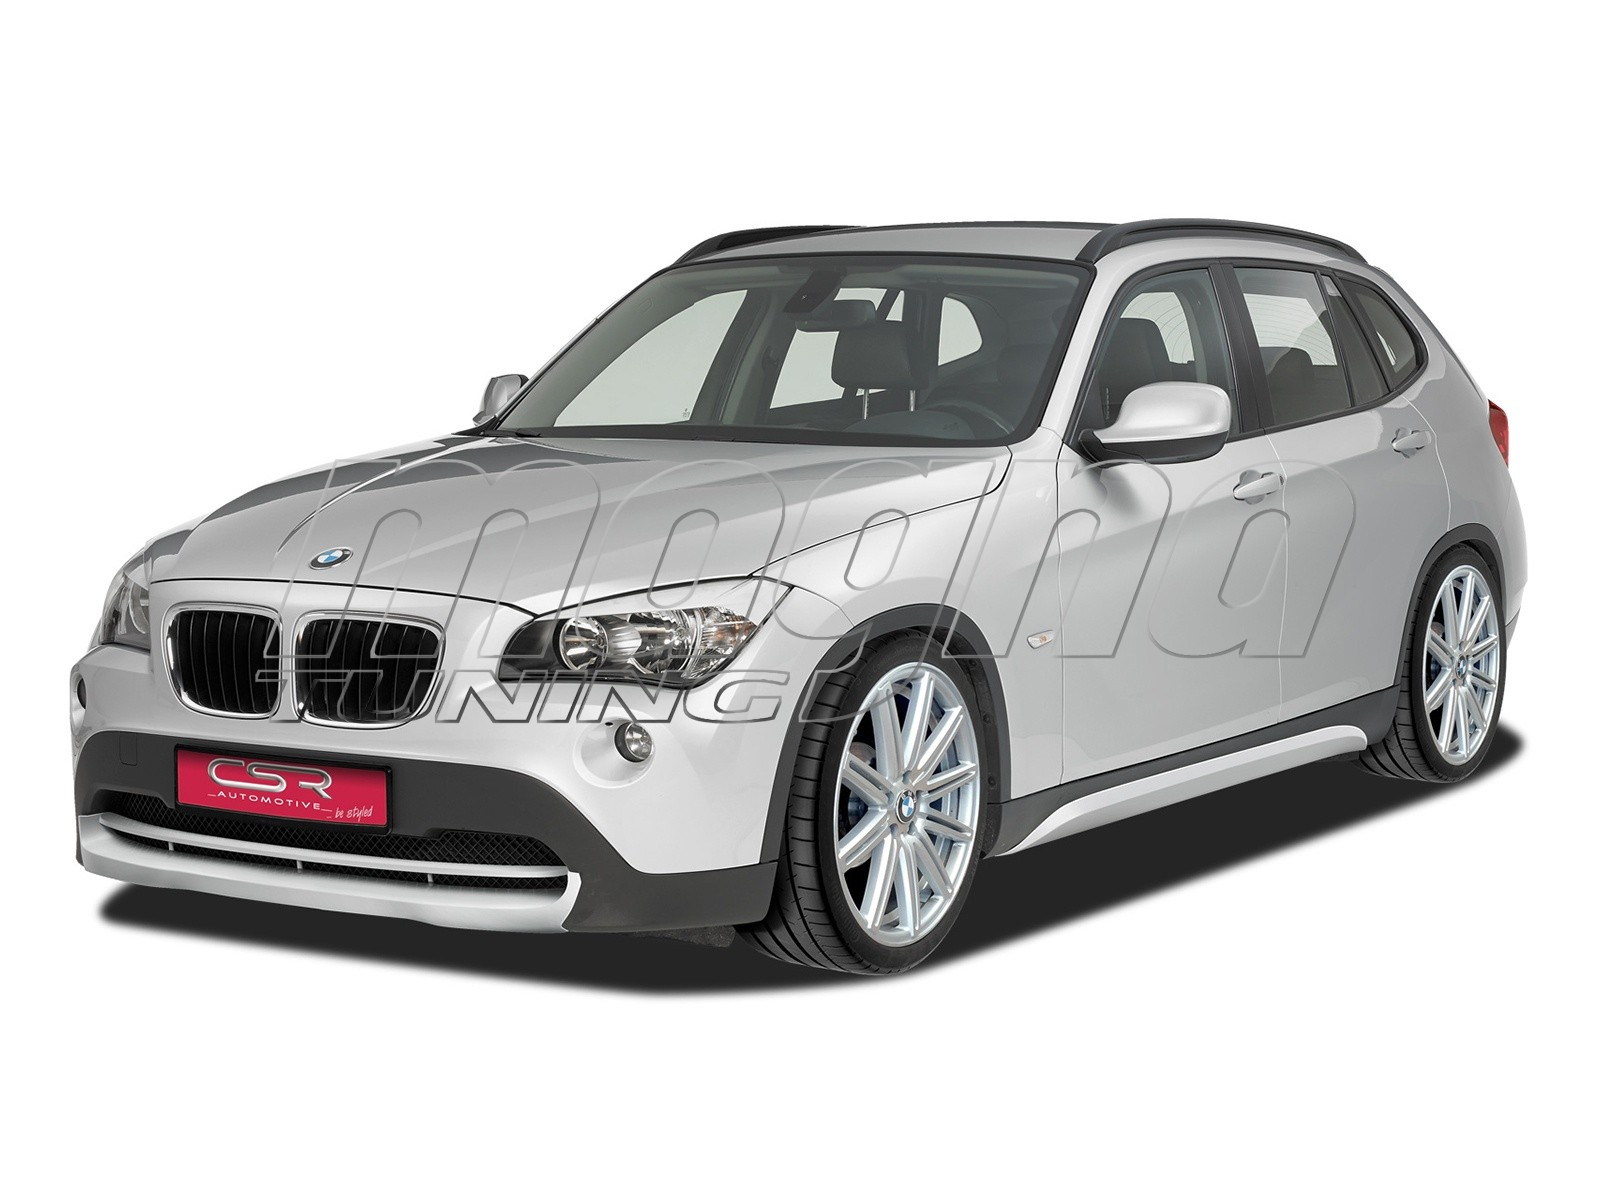 bmw x1 e84 newline body kit. Black Bedroom Furniture Sets. Home Design Ideas